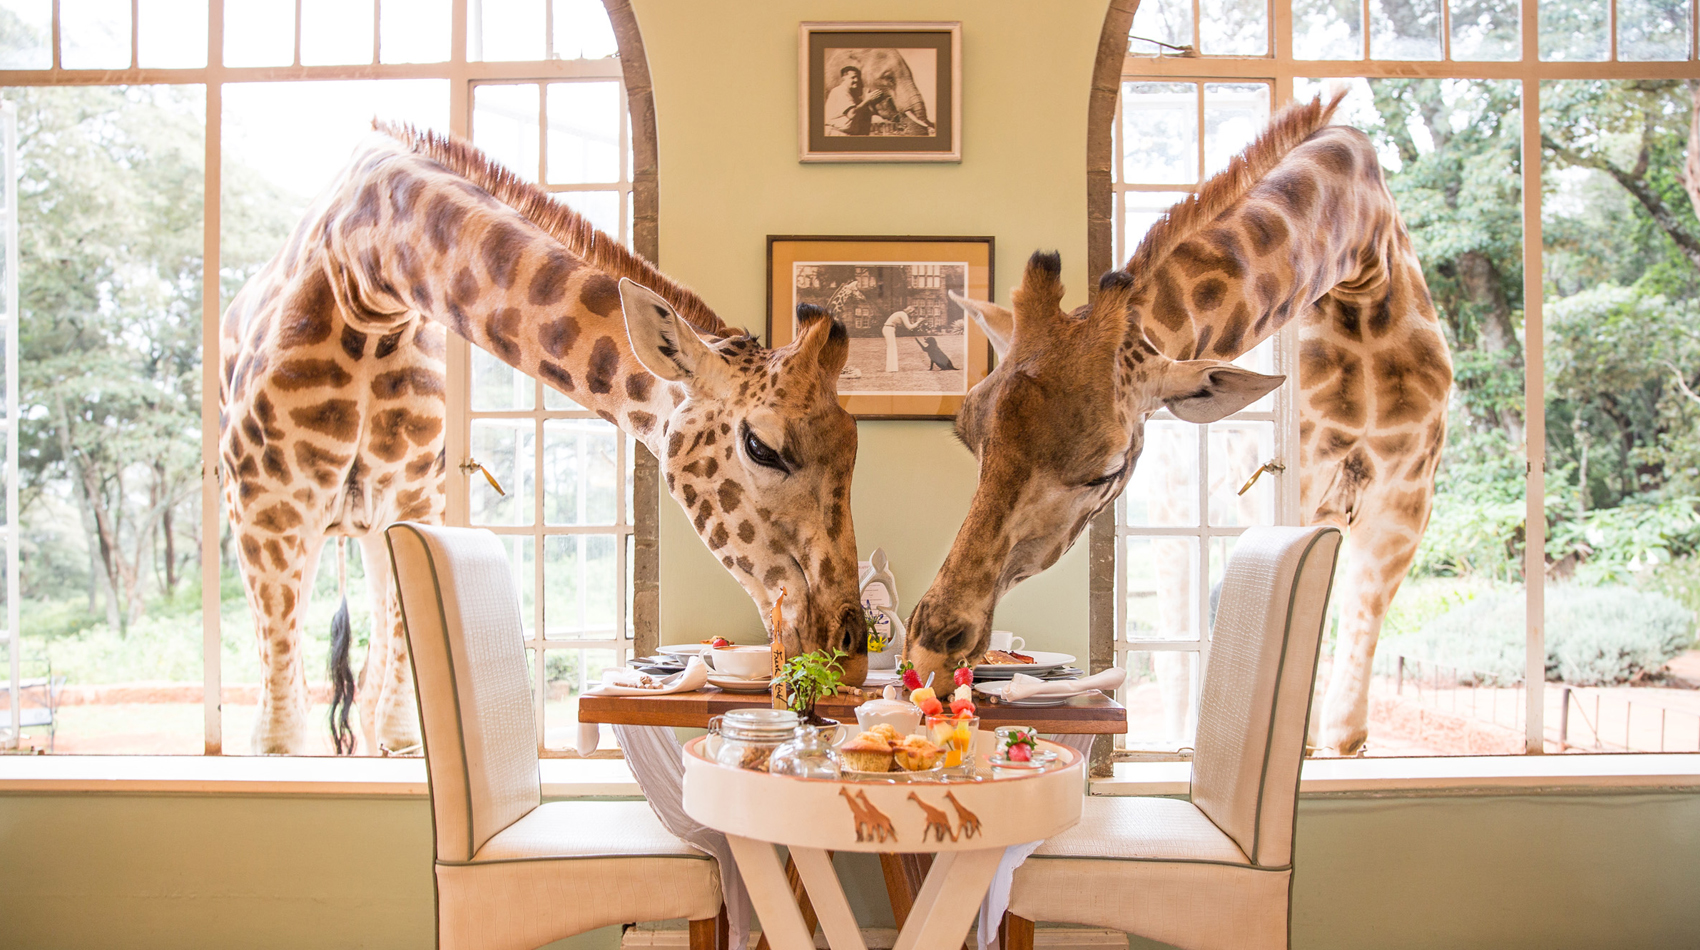 Giraffe_Manor_Refurb